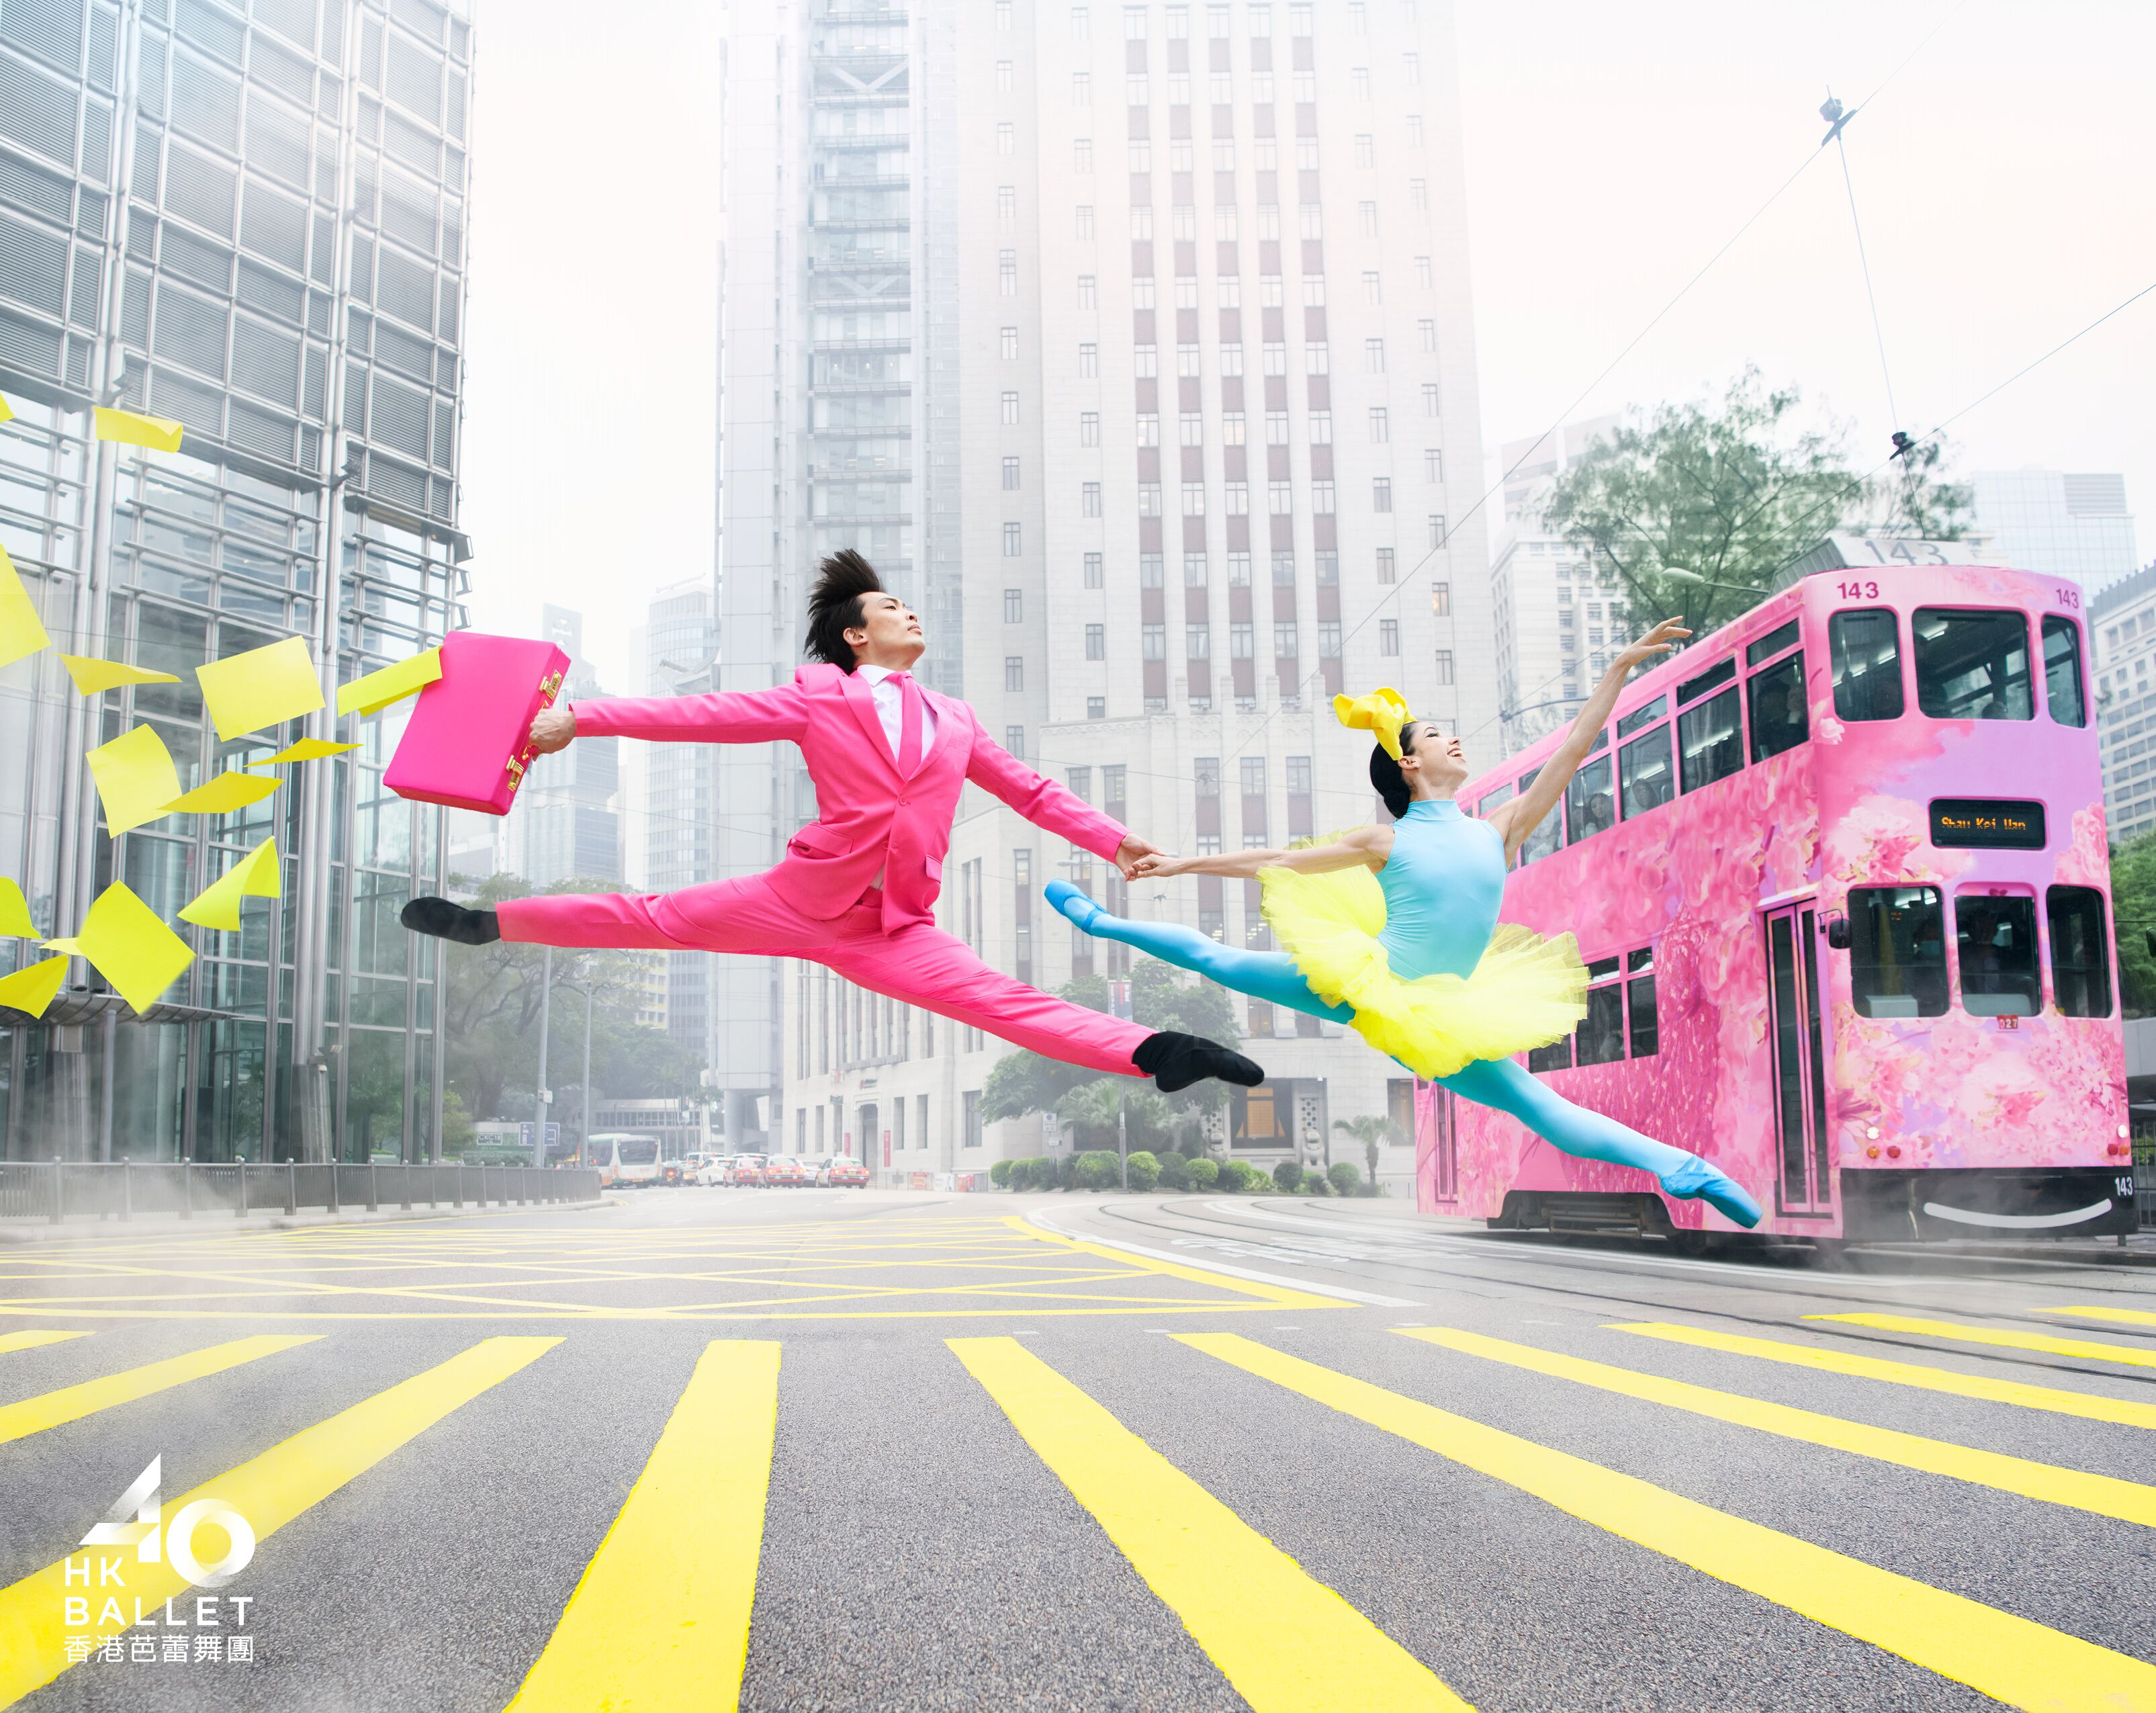 Hong Kong Ballet campaign by Design Army